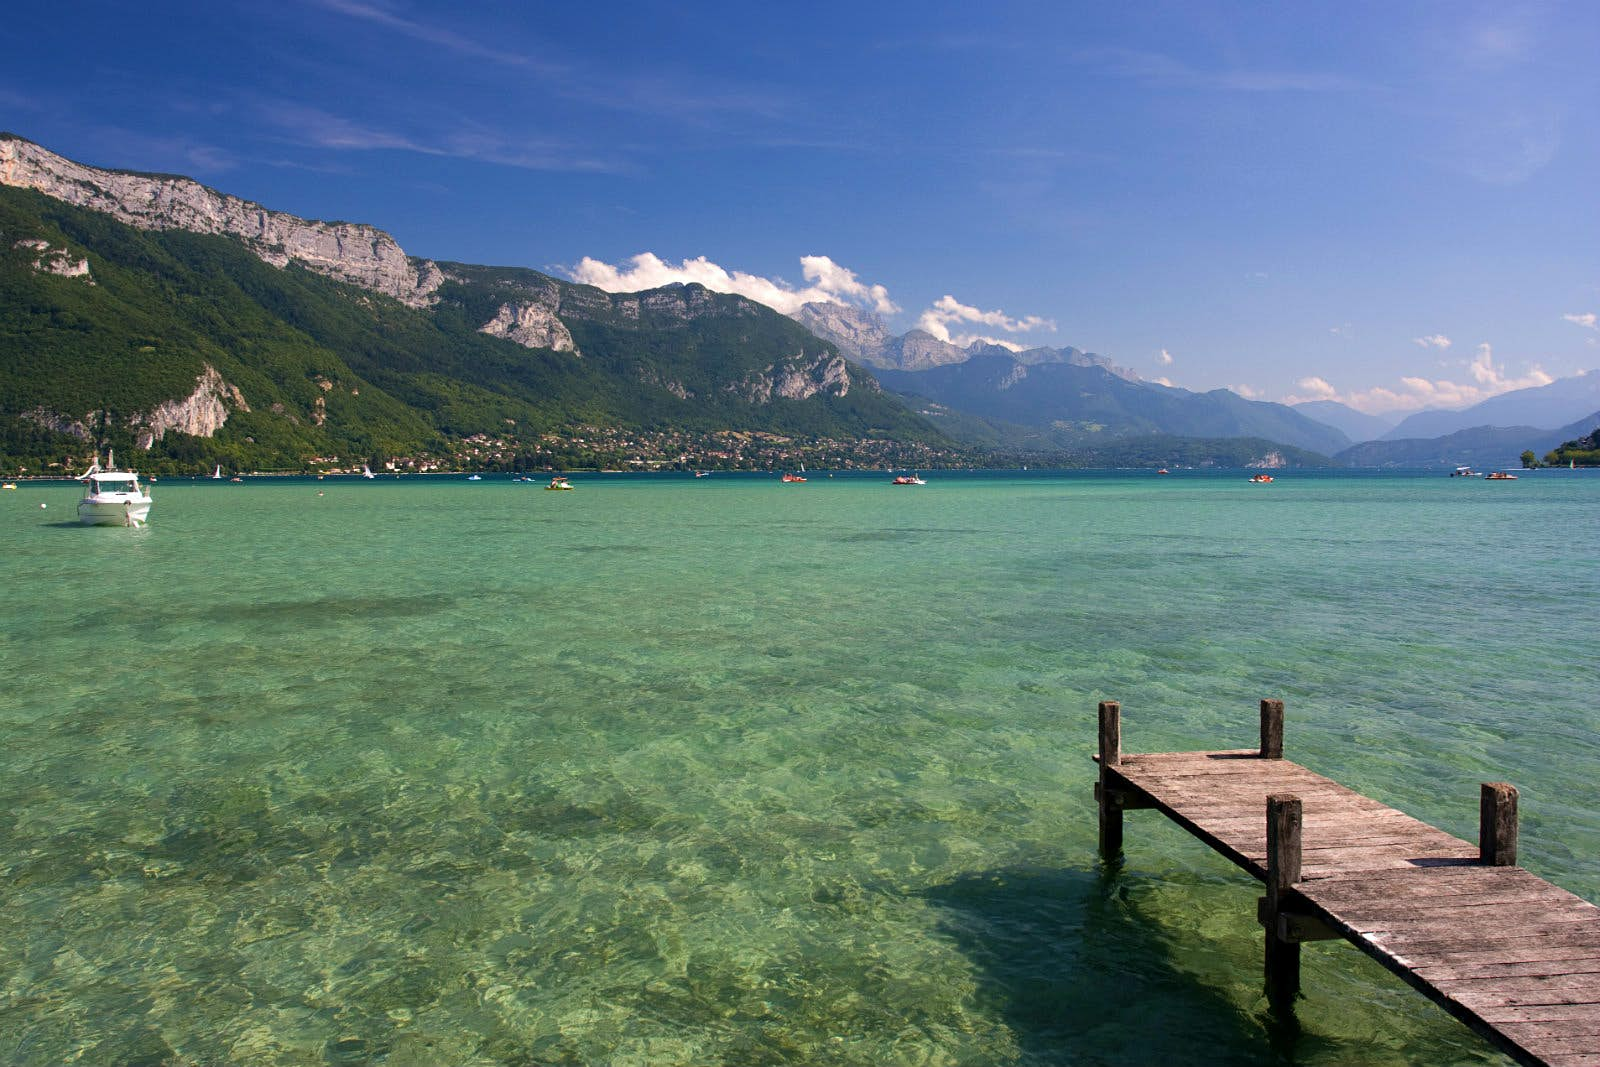 Mountain gazing should keep you occupied between swims in the pure waters of Lac d'Annecy © Pidi / Getty Images